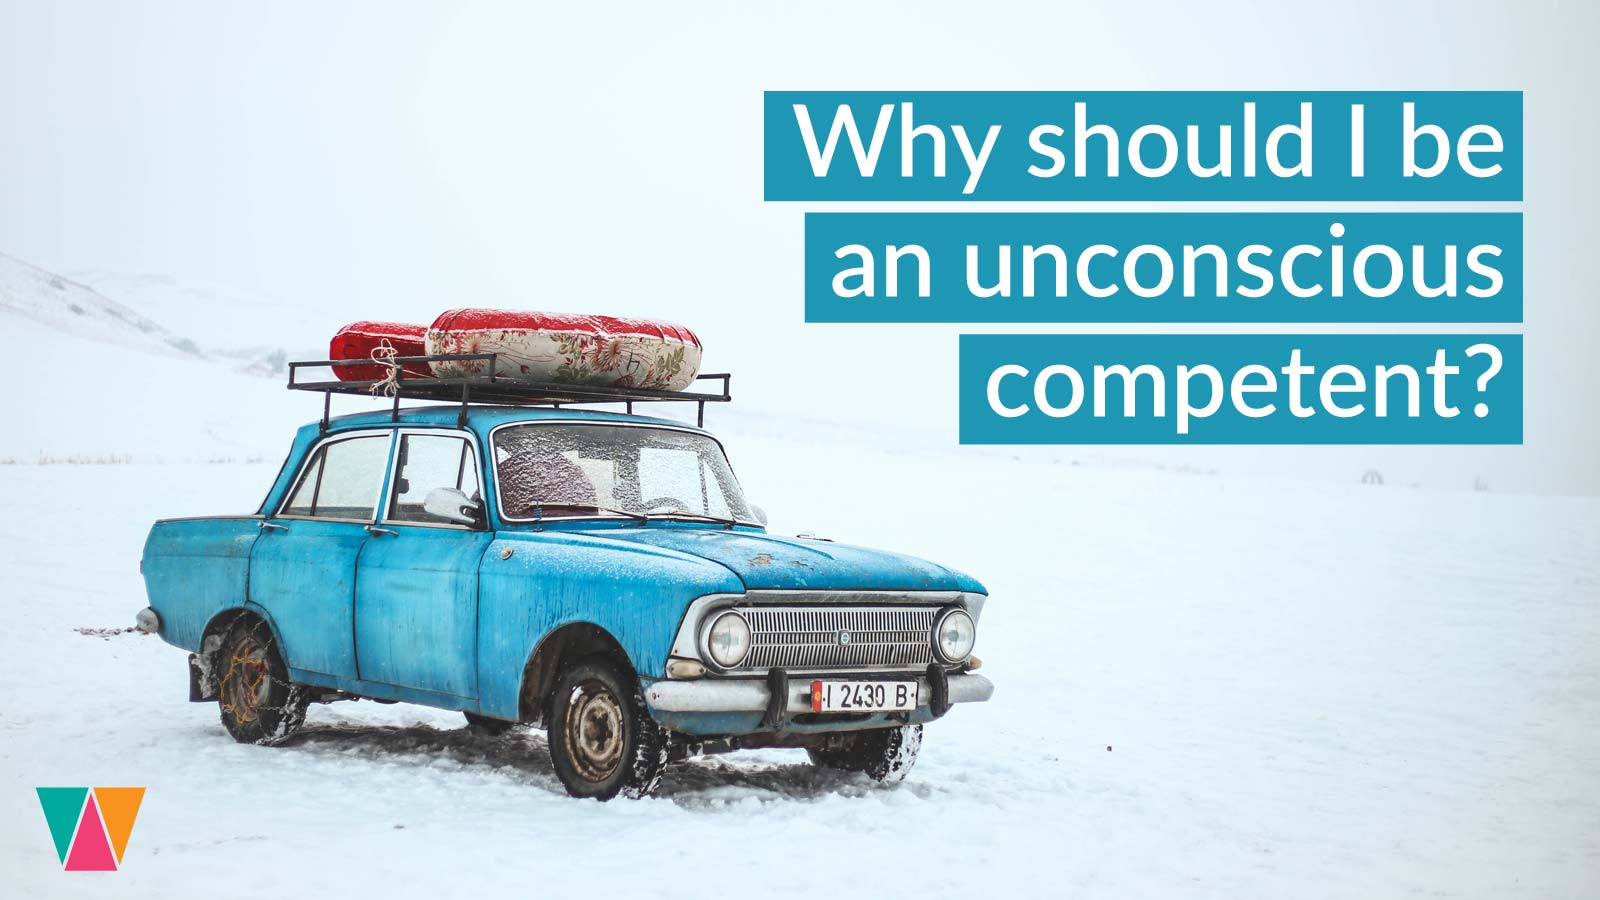 Why should I be an unconscious competent?